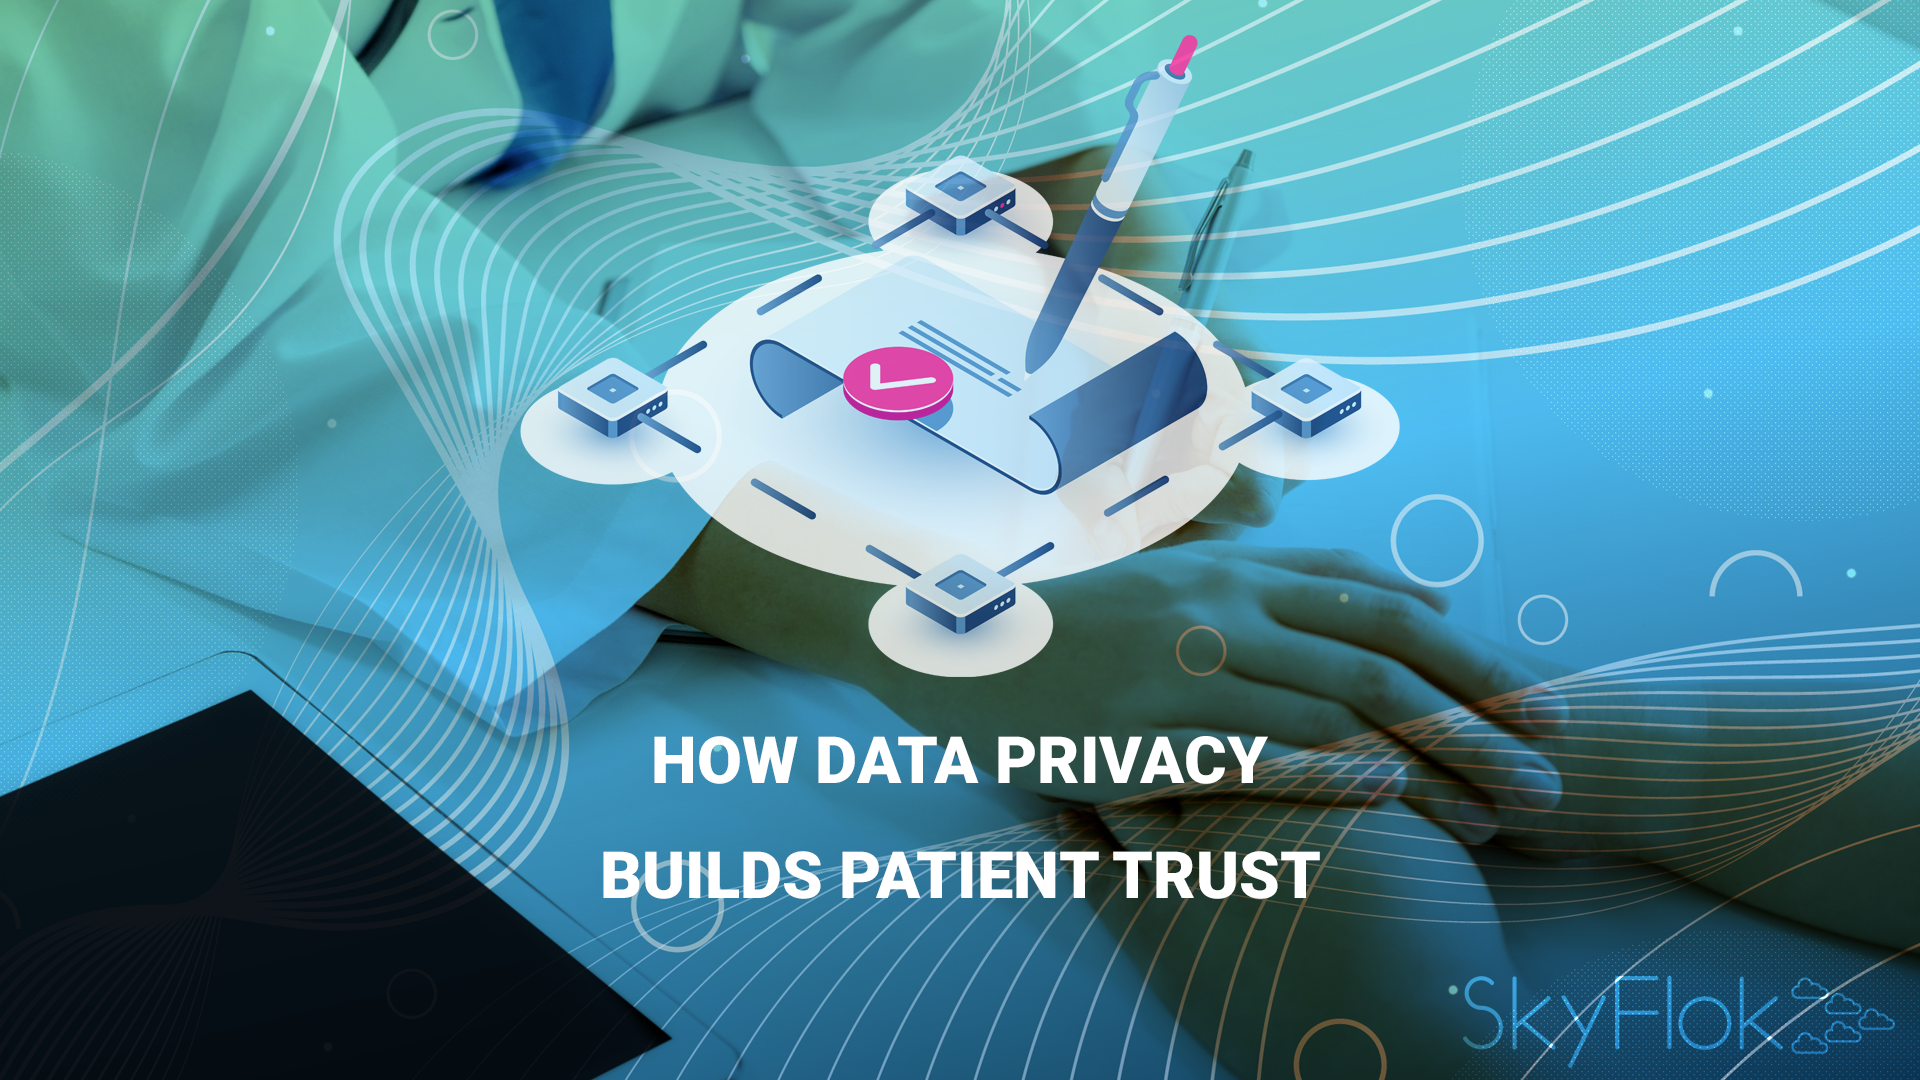 How data privacy builds patient trust